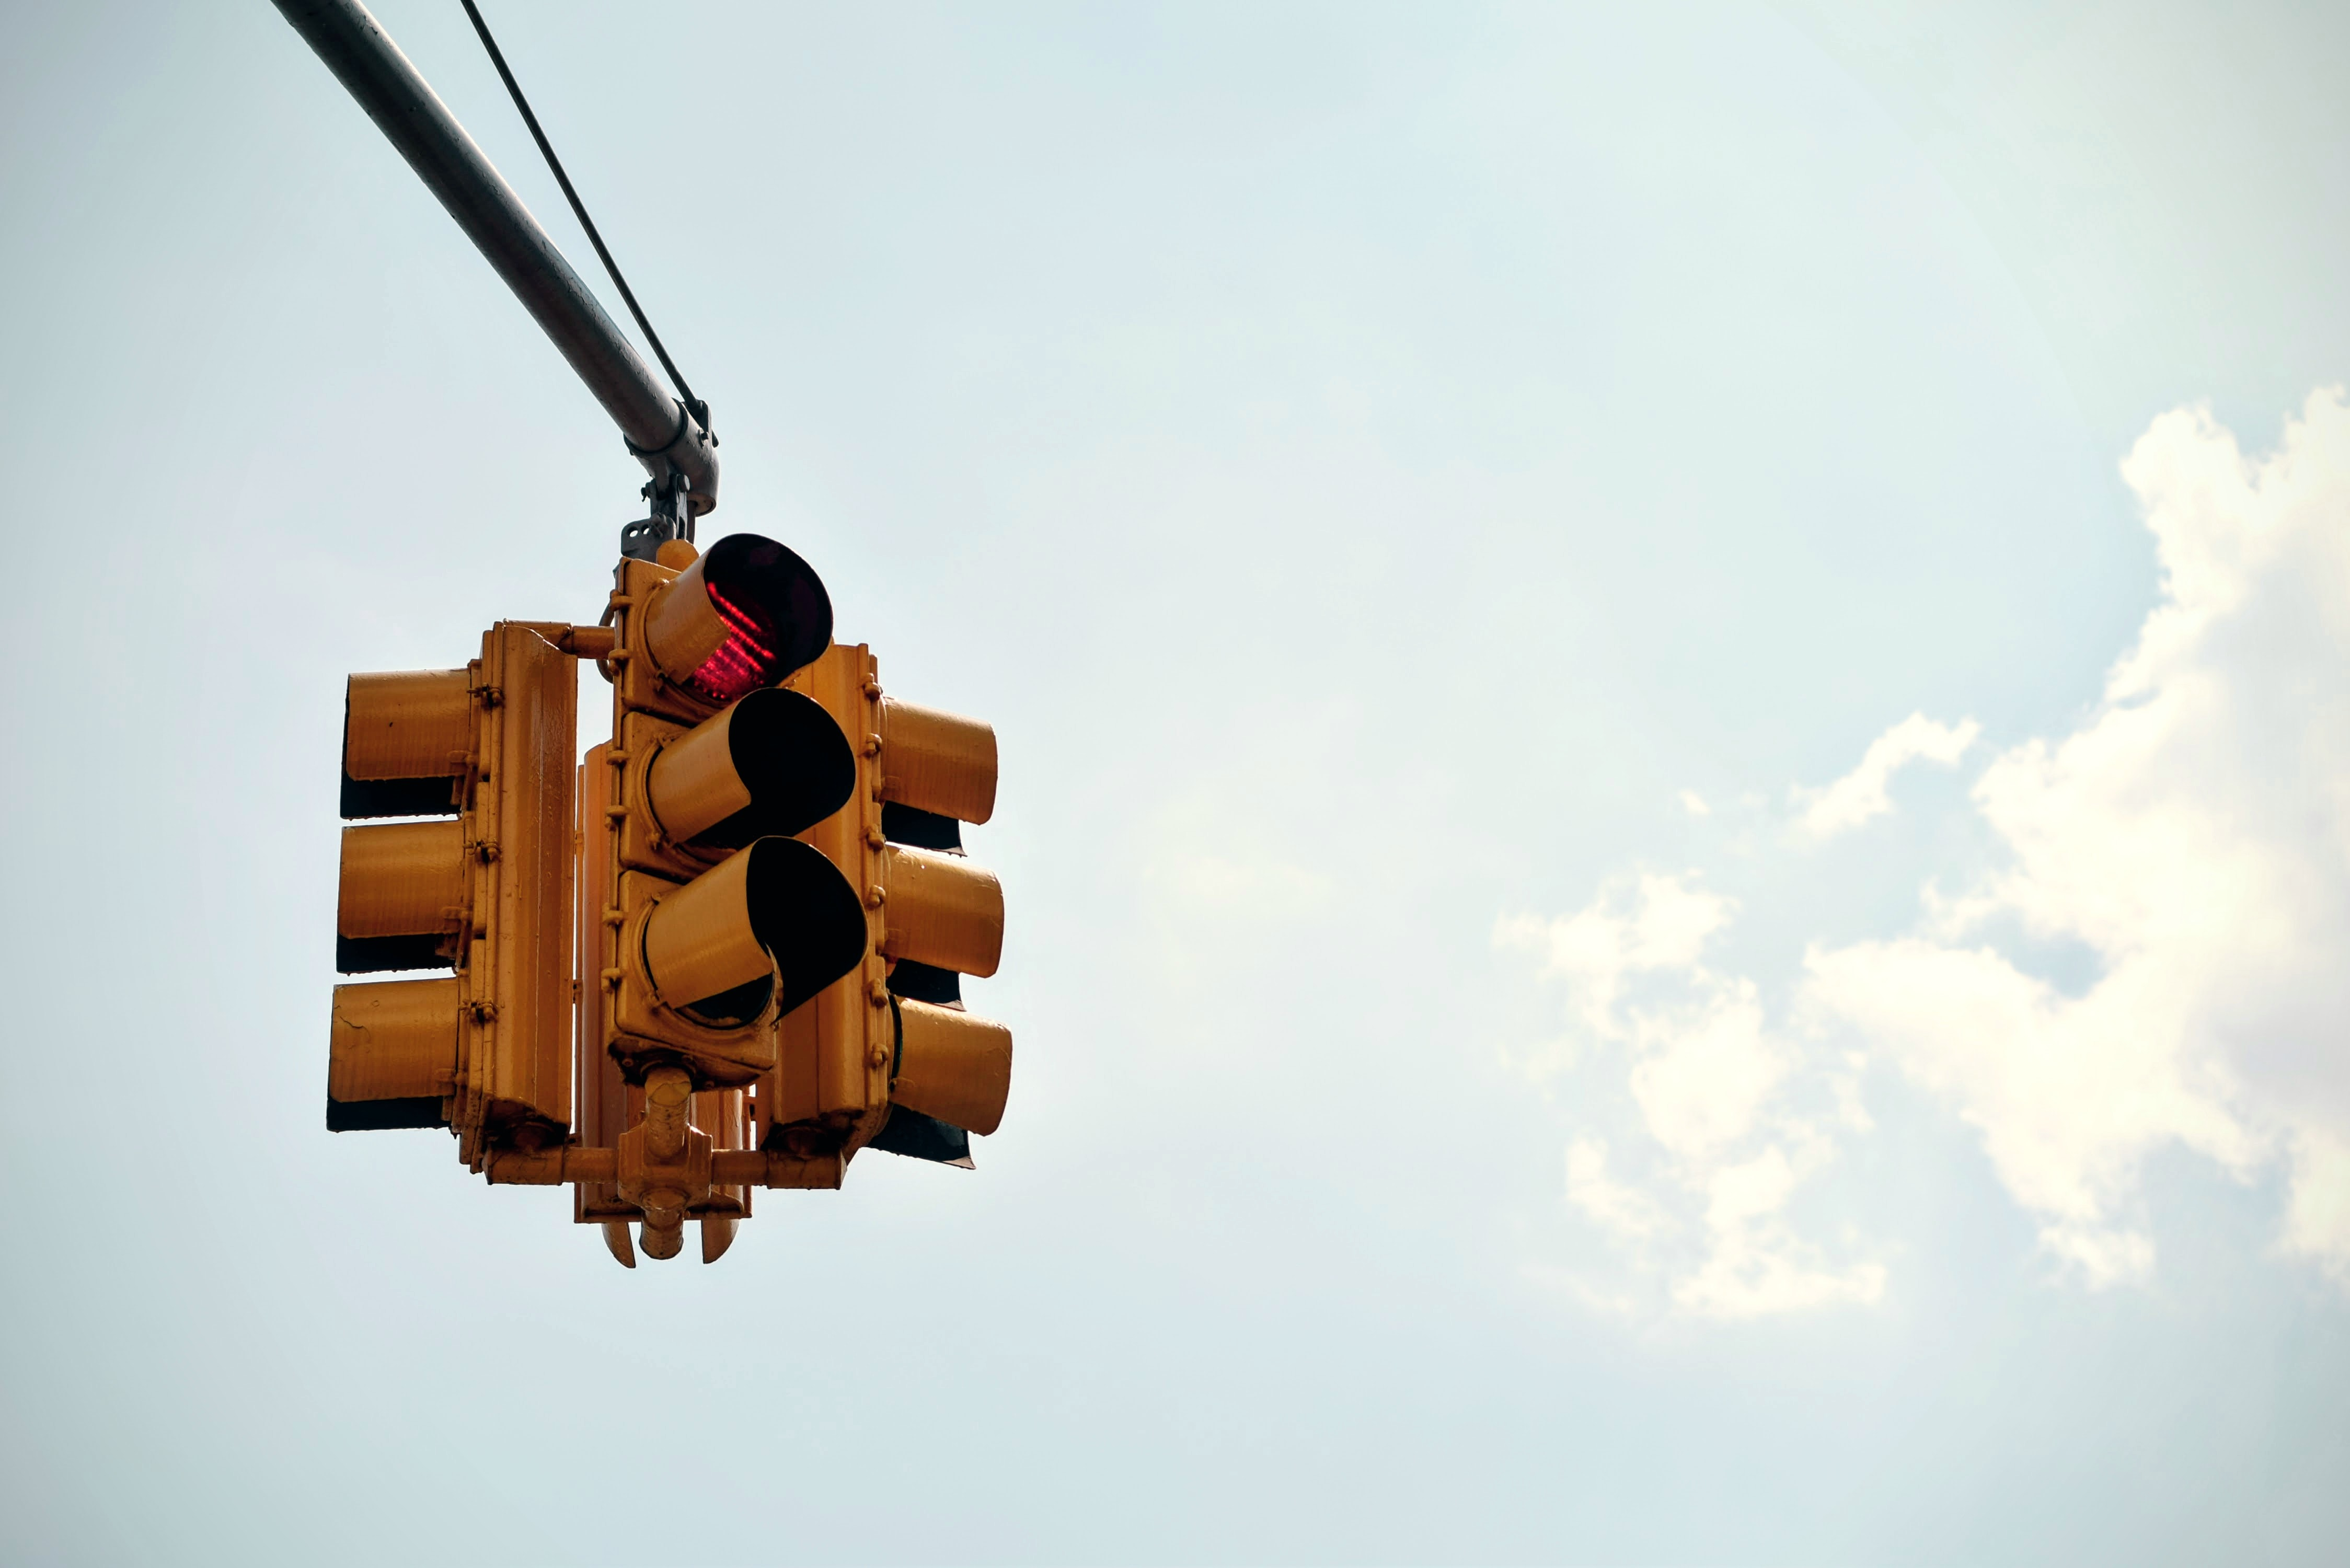 Red light on traffic lights mounted on a pole